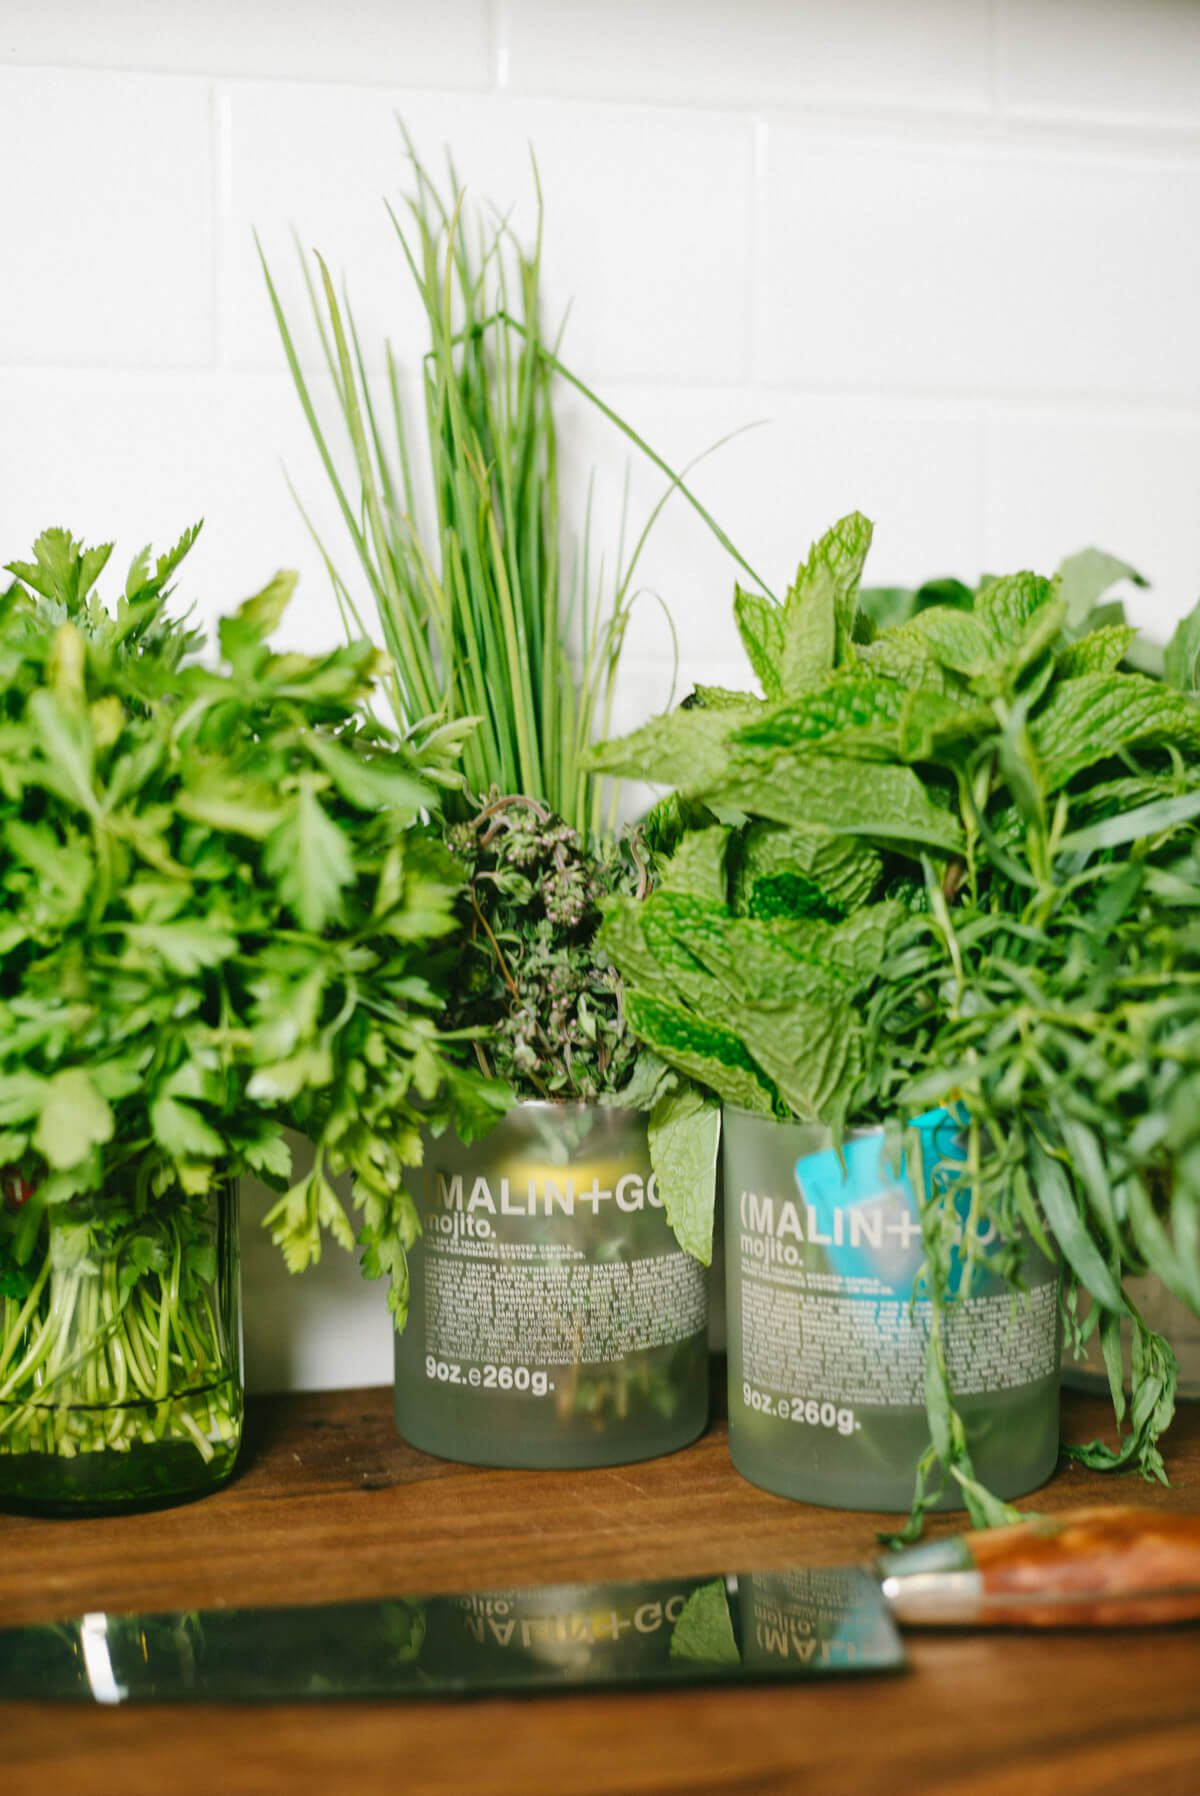 Herbs stored in glasses on the counter